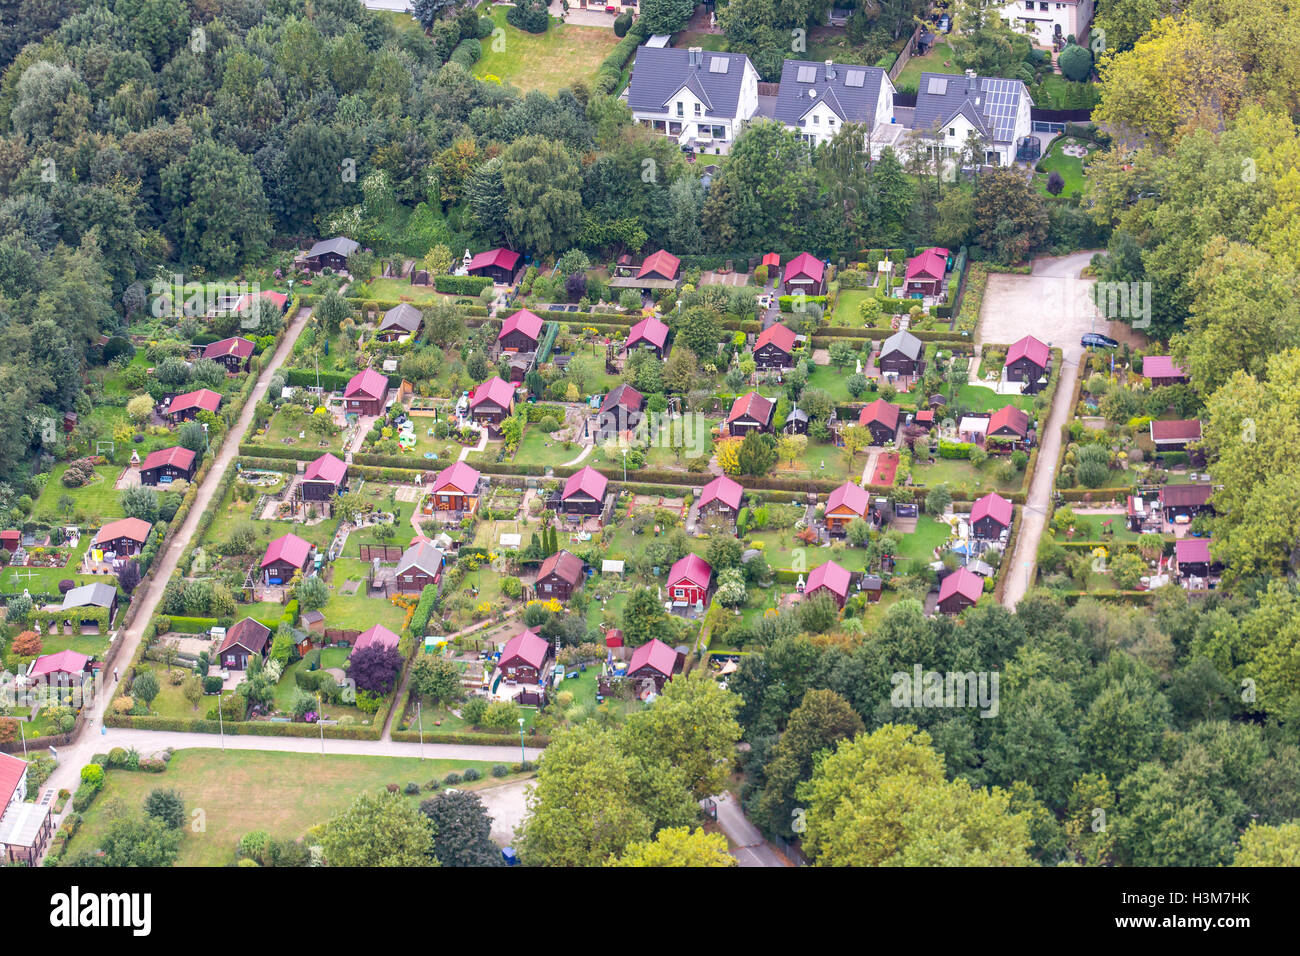 Areal view of small private gardens, not for living, just for gardening, plants, vegetables, leisure, Essen, Germany - Stock Image